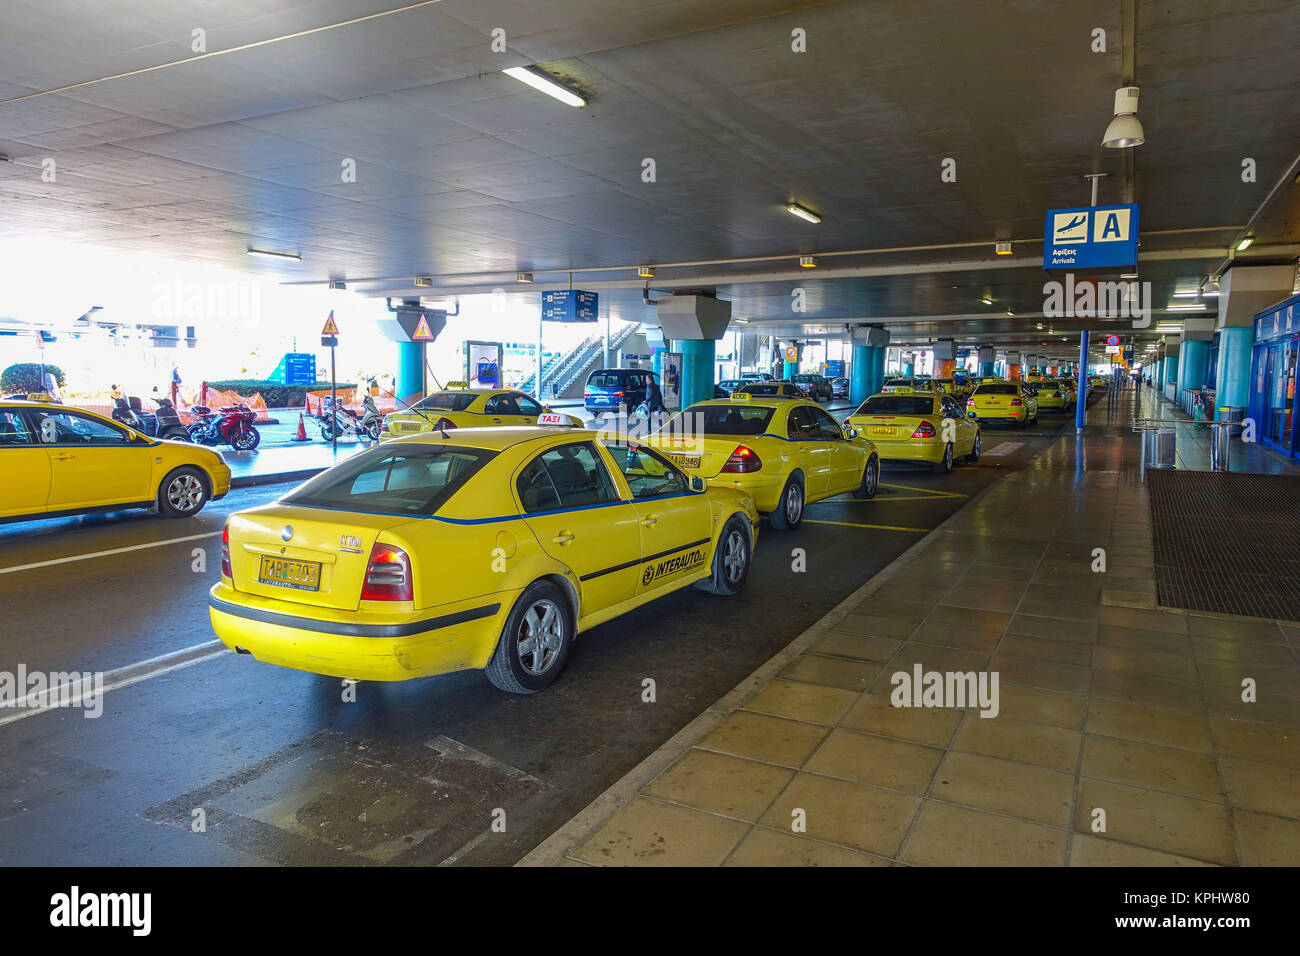 Yellow taxis queueing outside Athens Airport, Greece Stock Photo